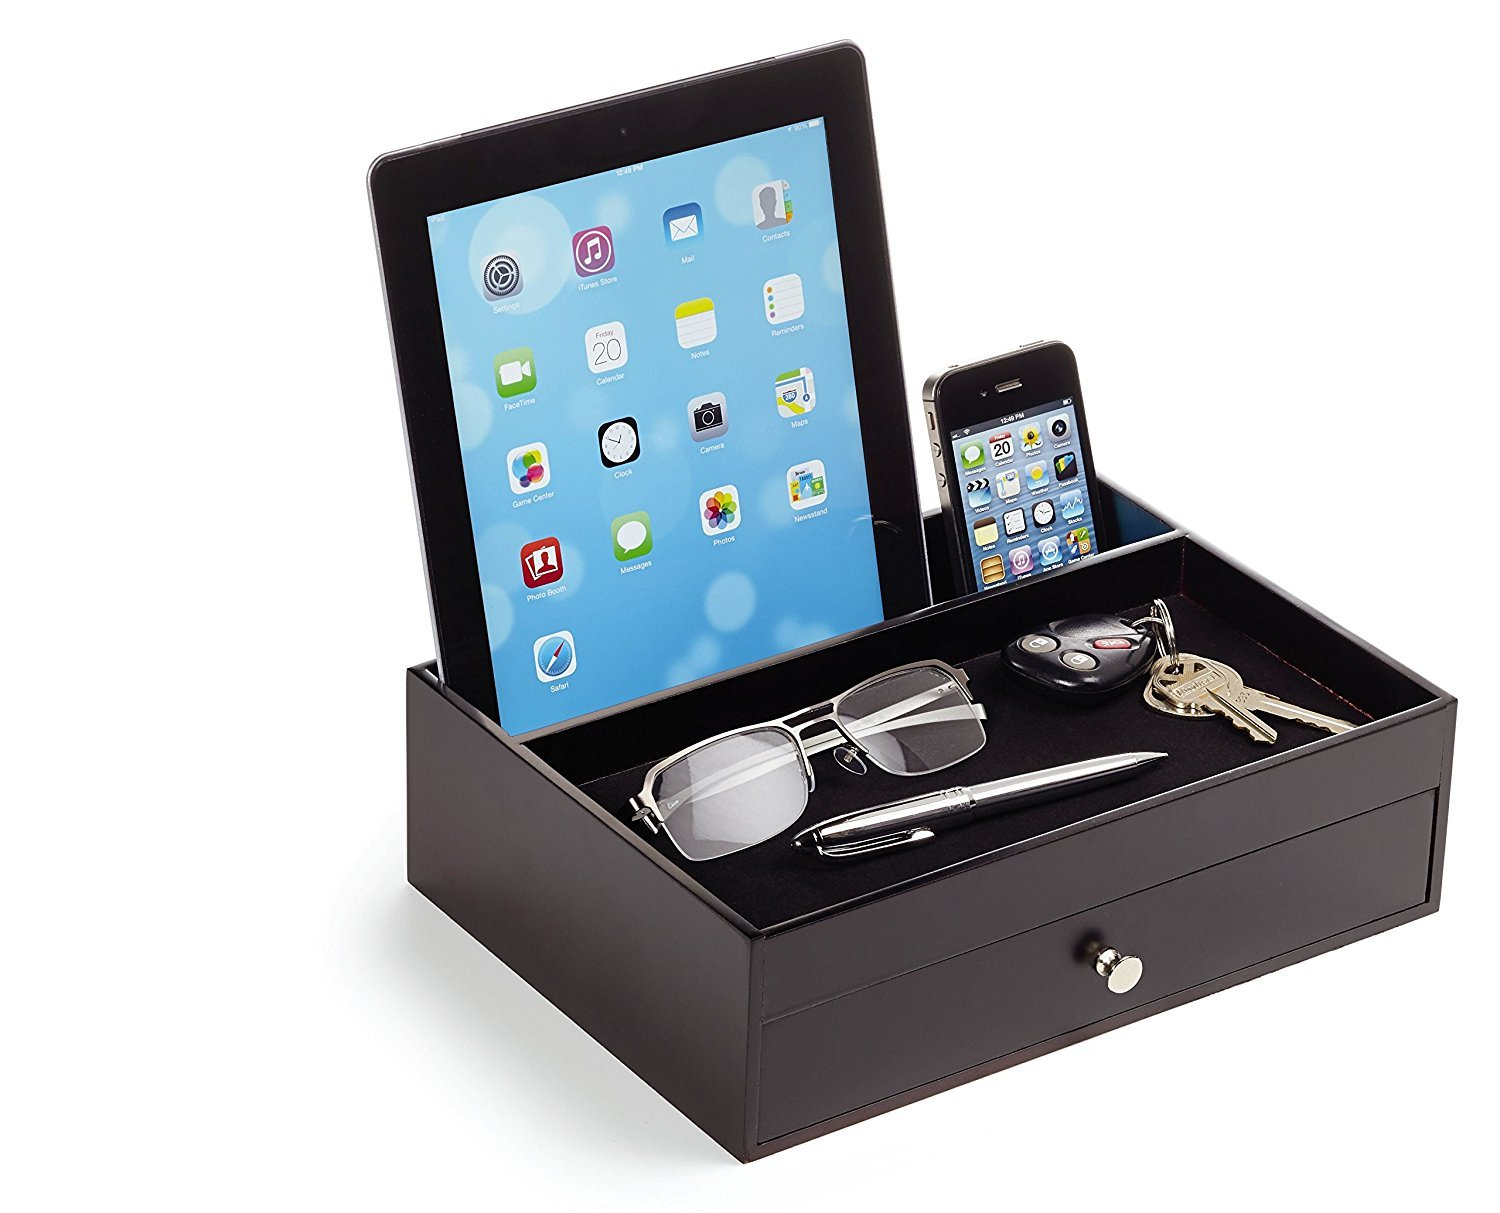 Massca Original Valet Charging Station Multi-Device Office Desk Organizer. Perfect Nightstand Organizer Great for Your Wallet, Keys, Phones and Other Electronic Devices.Perfect Gift Idea. by Massca